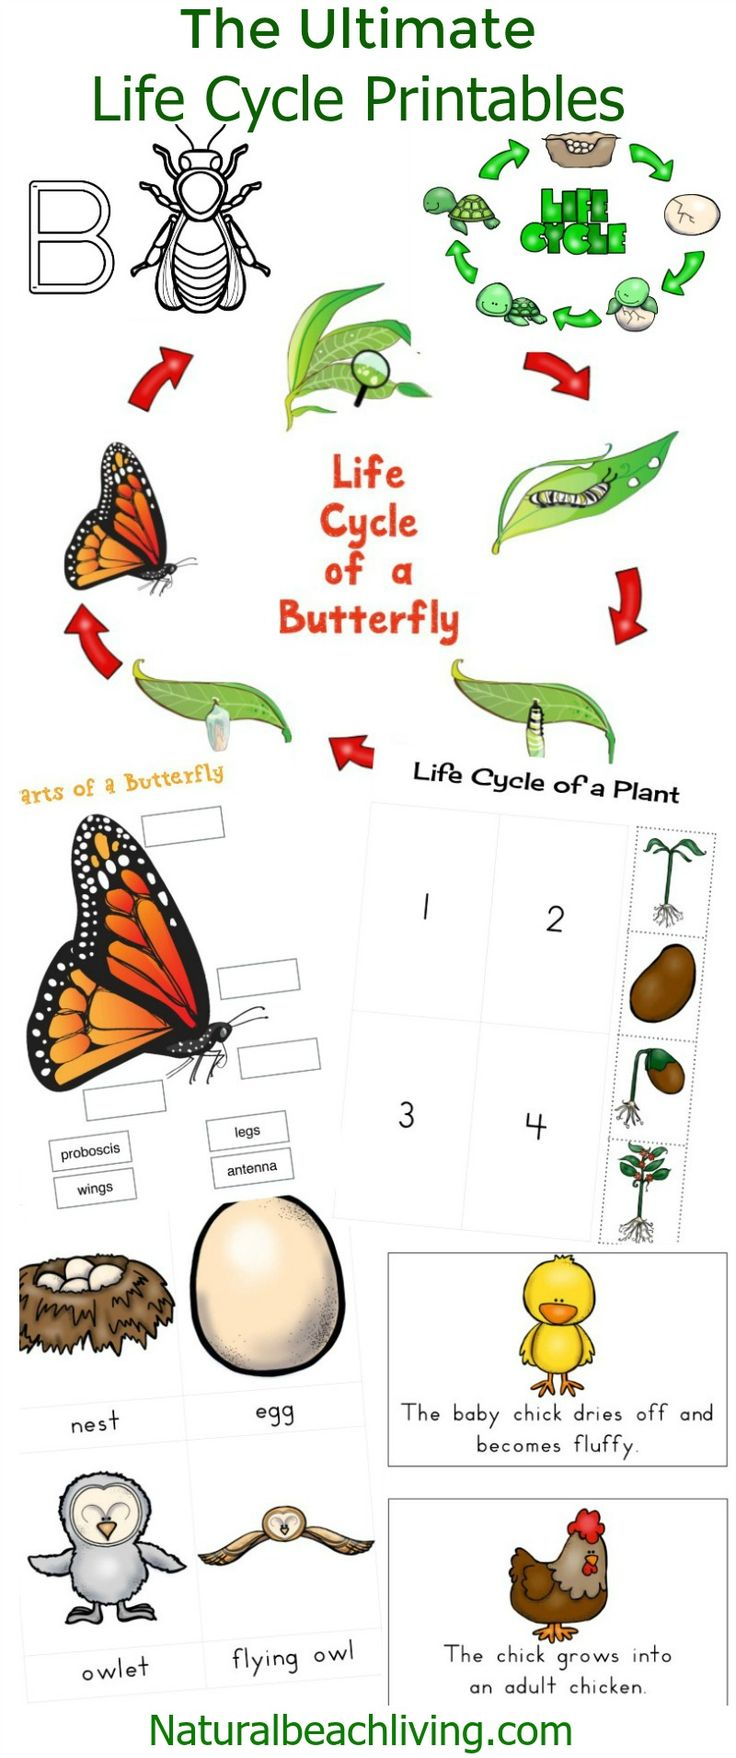 Owl butterfly life cycle - photo#15